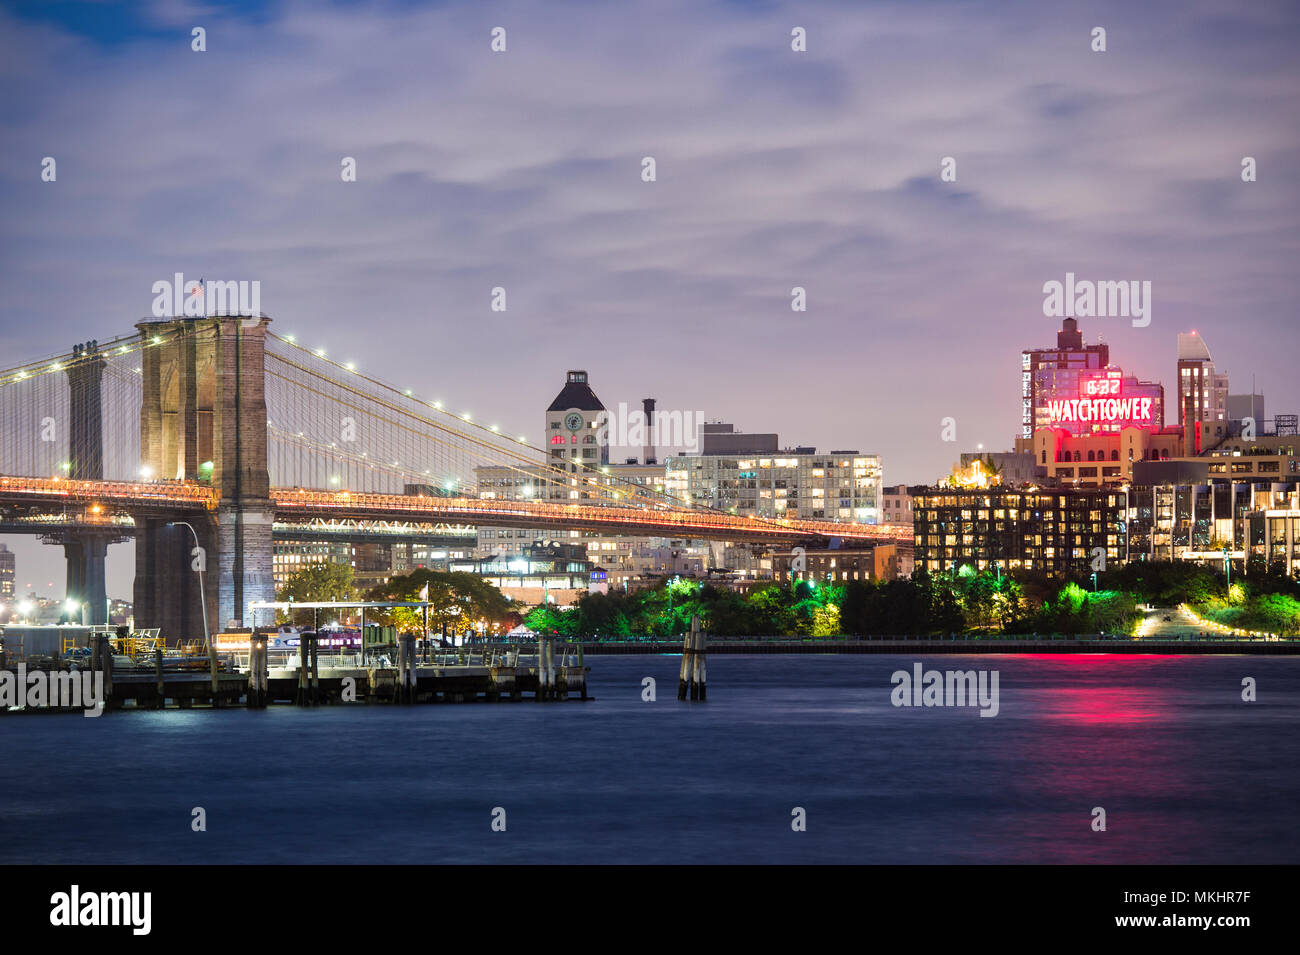 NEW YORK - USA - 29 OCTOBER 2017. View of Manhattan skyline illuminated at dusk over the Hudson River. New York City, USA. Stock Photo